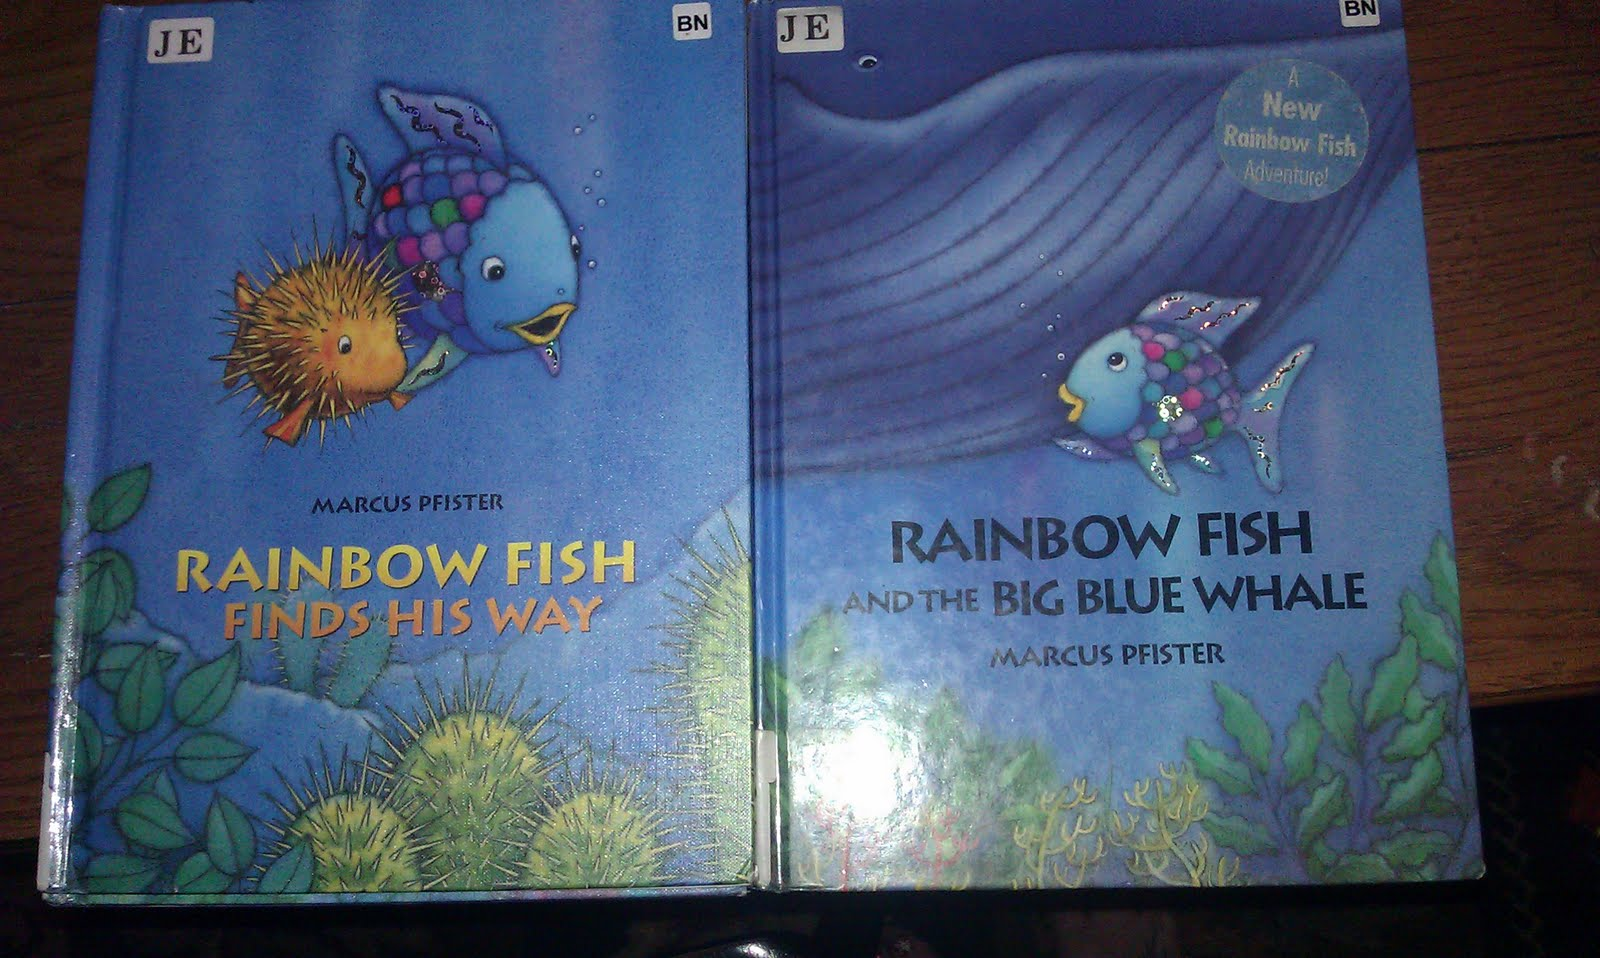 Kissed by a frog mama monday educational edition 2 for Rainbow fish story